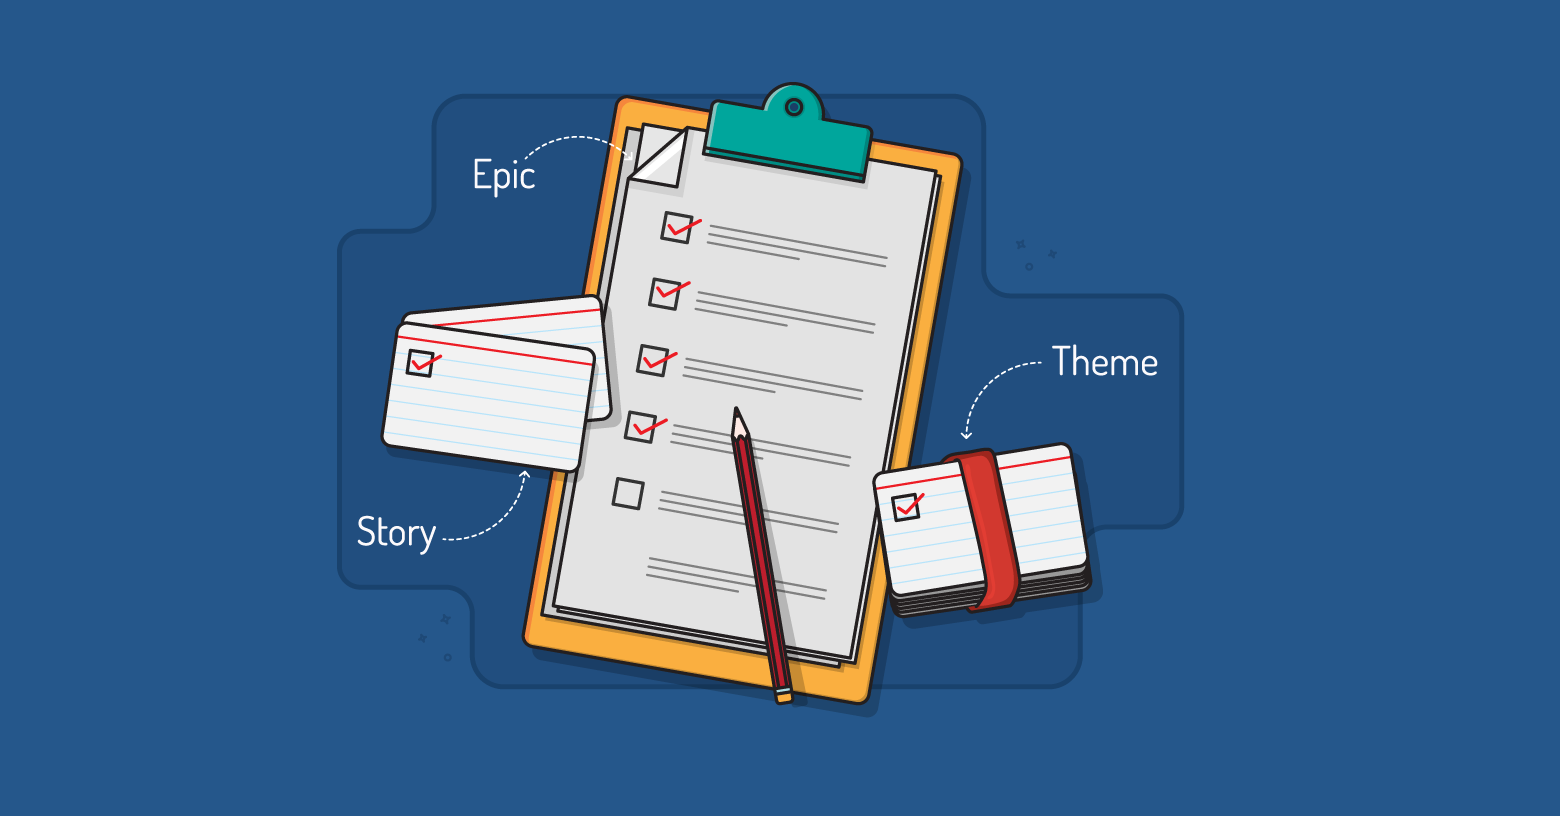 User Stories, Epics and Themes